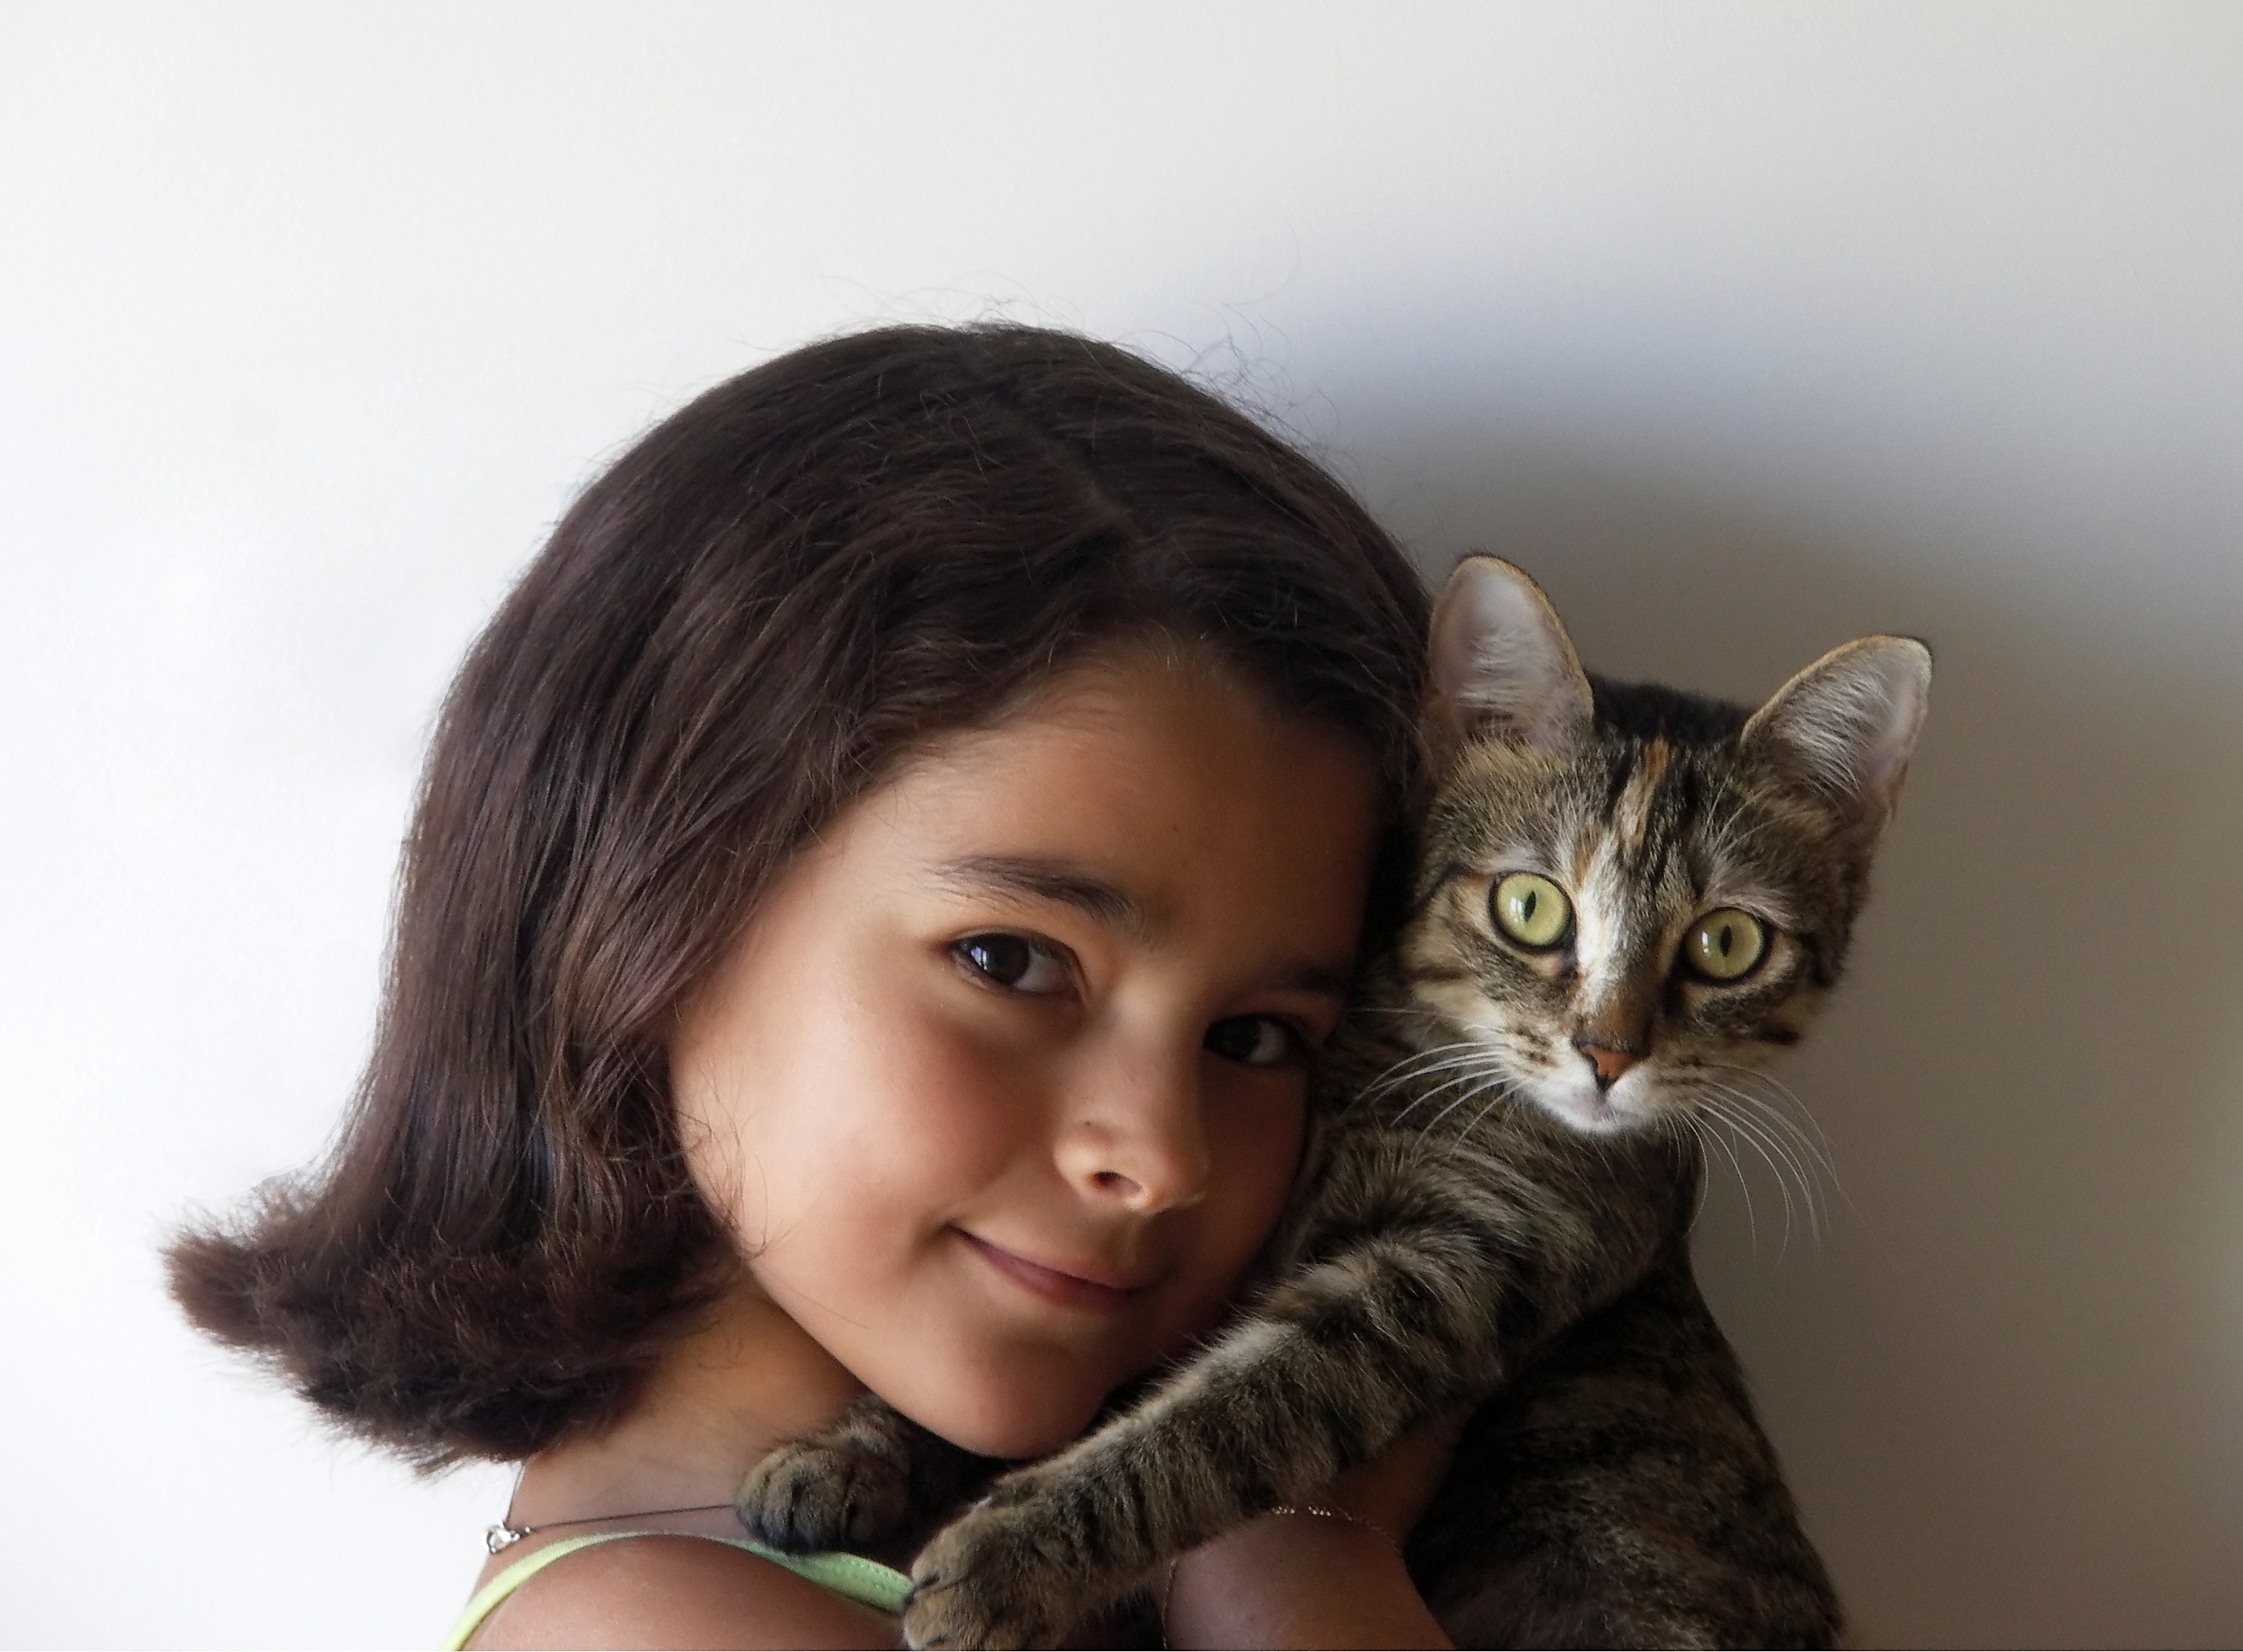 Description Girl and cat.jpg